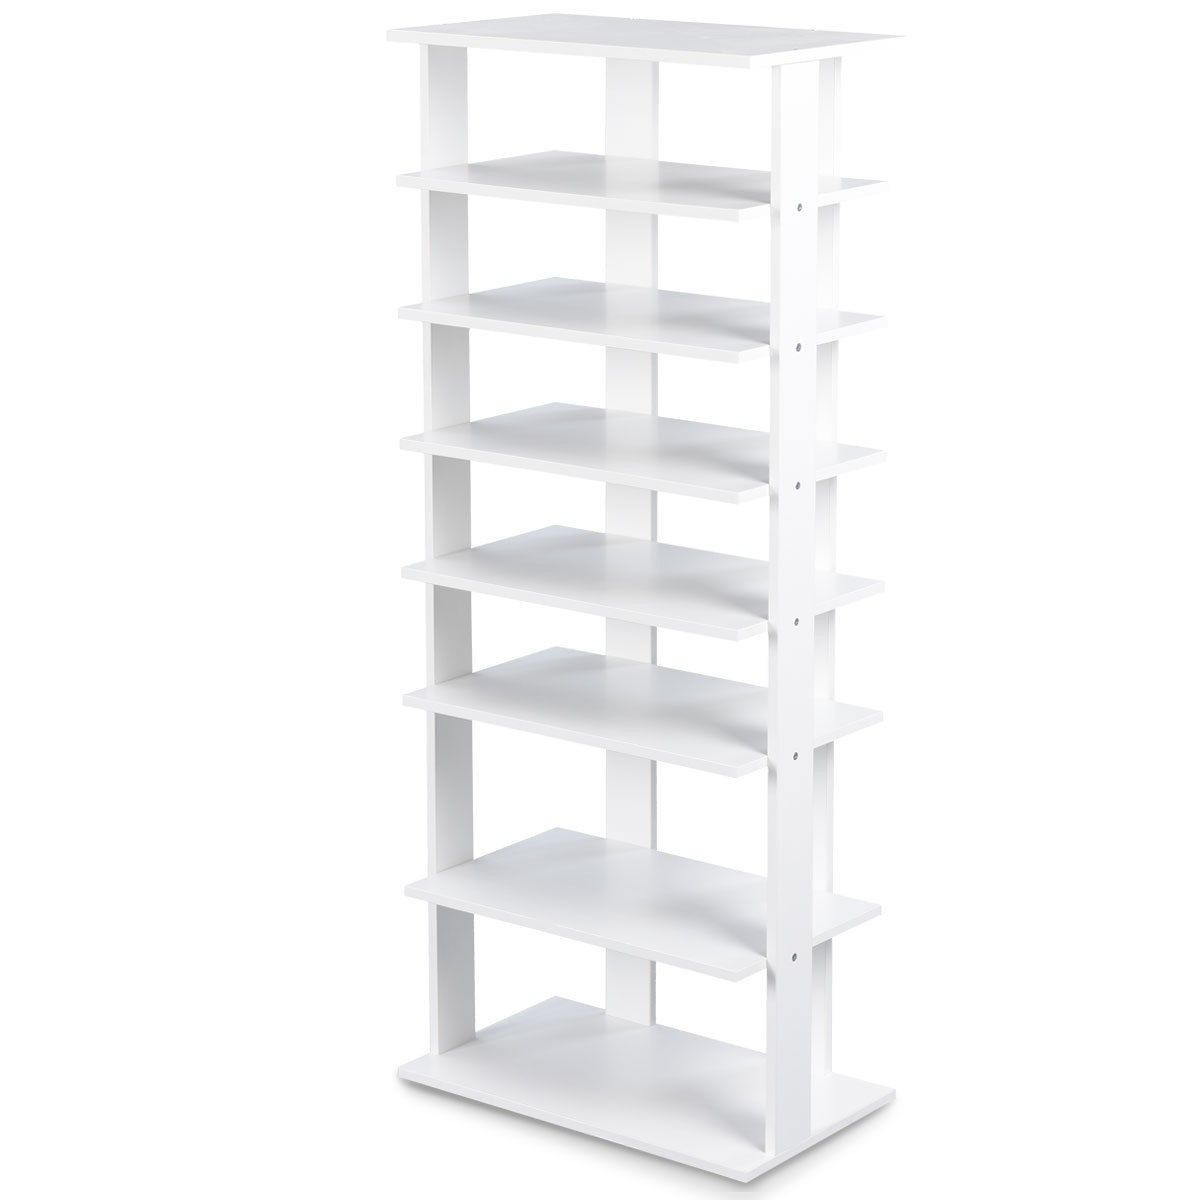 7 Tier Dual 14 Pair Shoe Rack Free Standing Concise Shelves Storage 60 95 Free Shipping This F Wooden Shoe Storage Shoe Rack Entryway Shoe Rack Organization